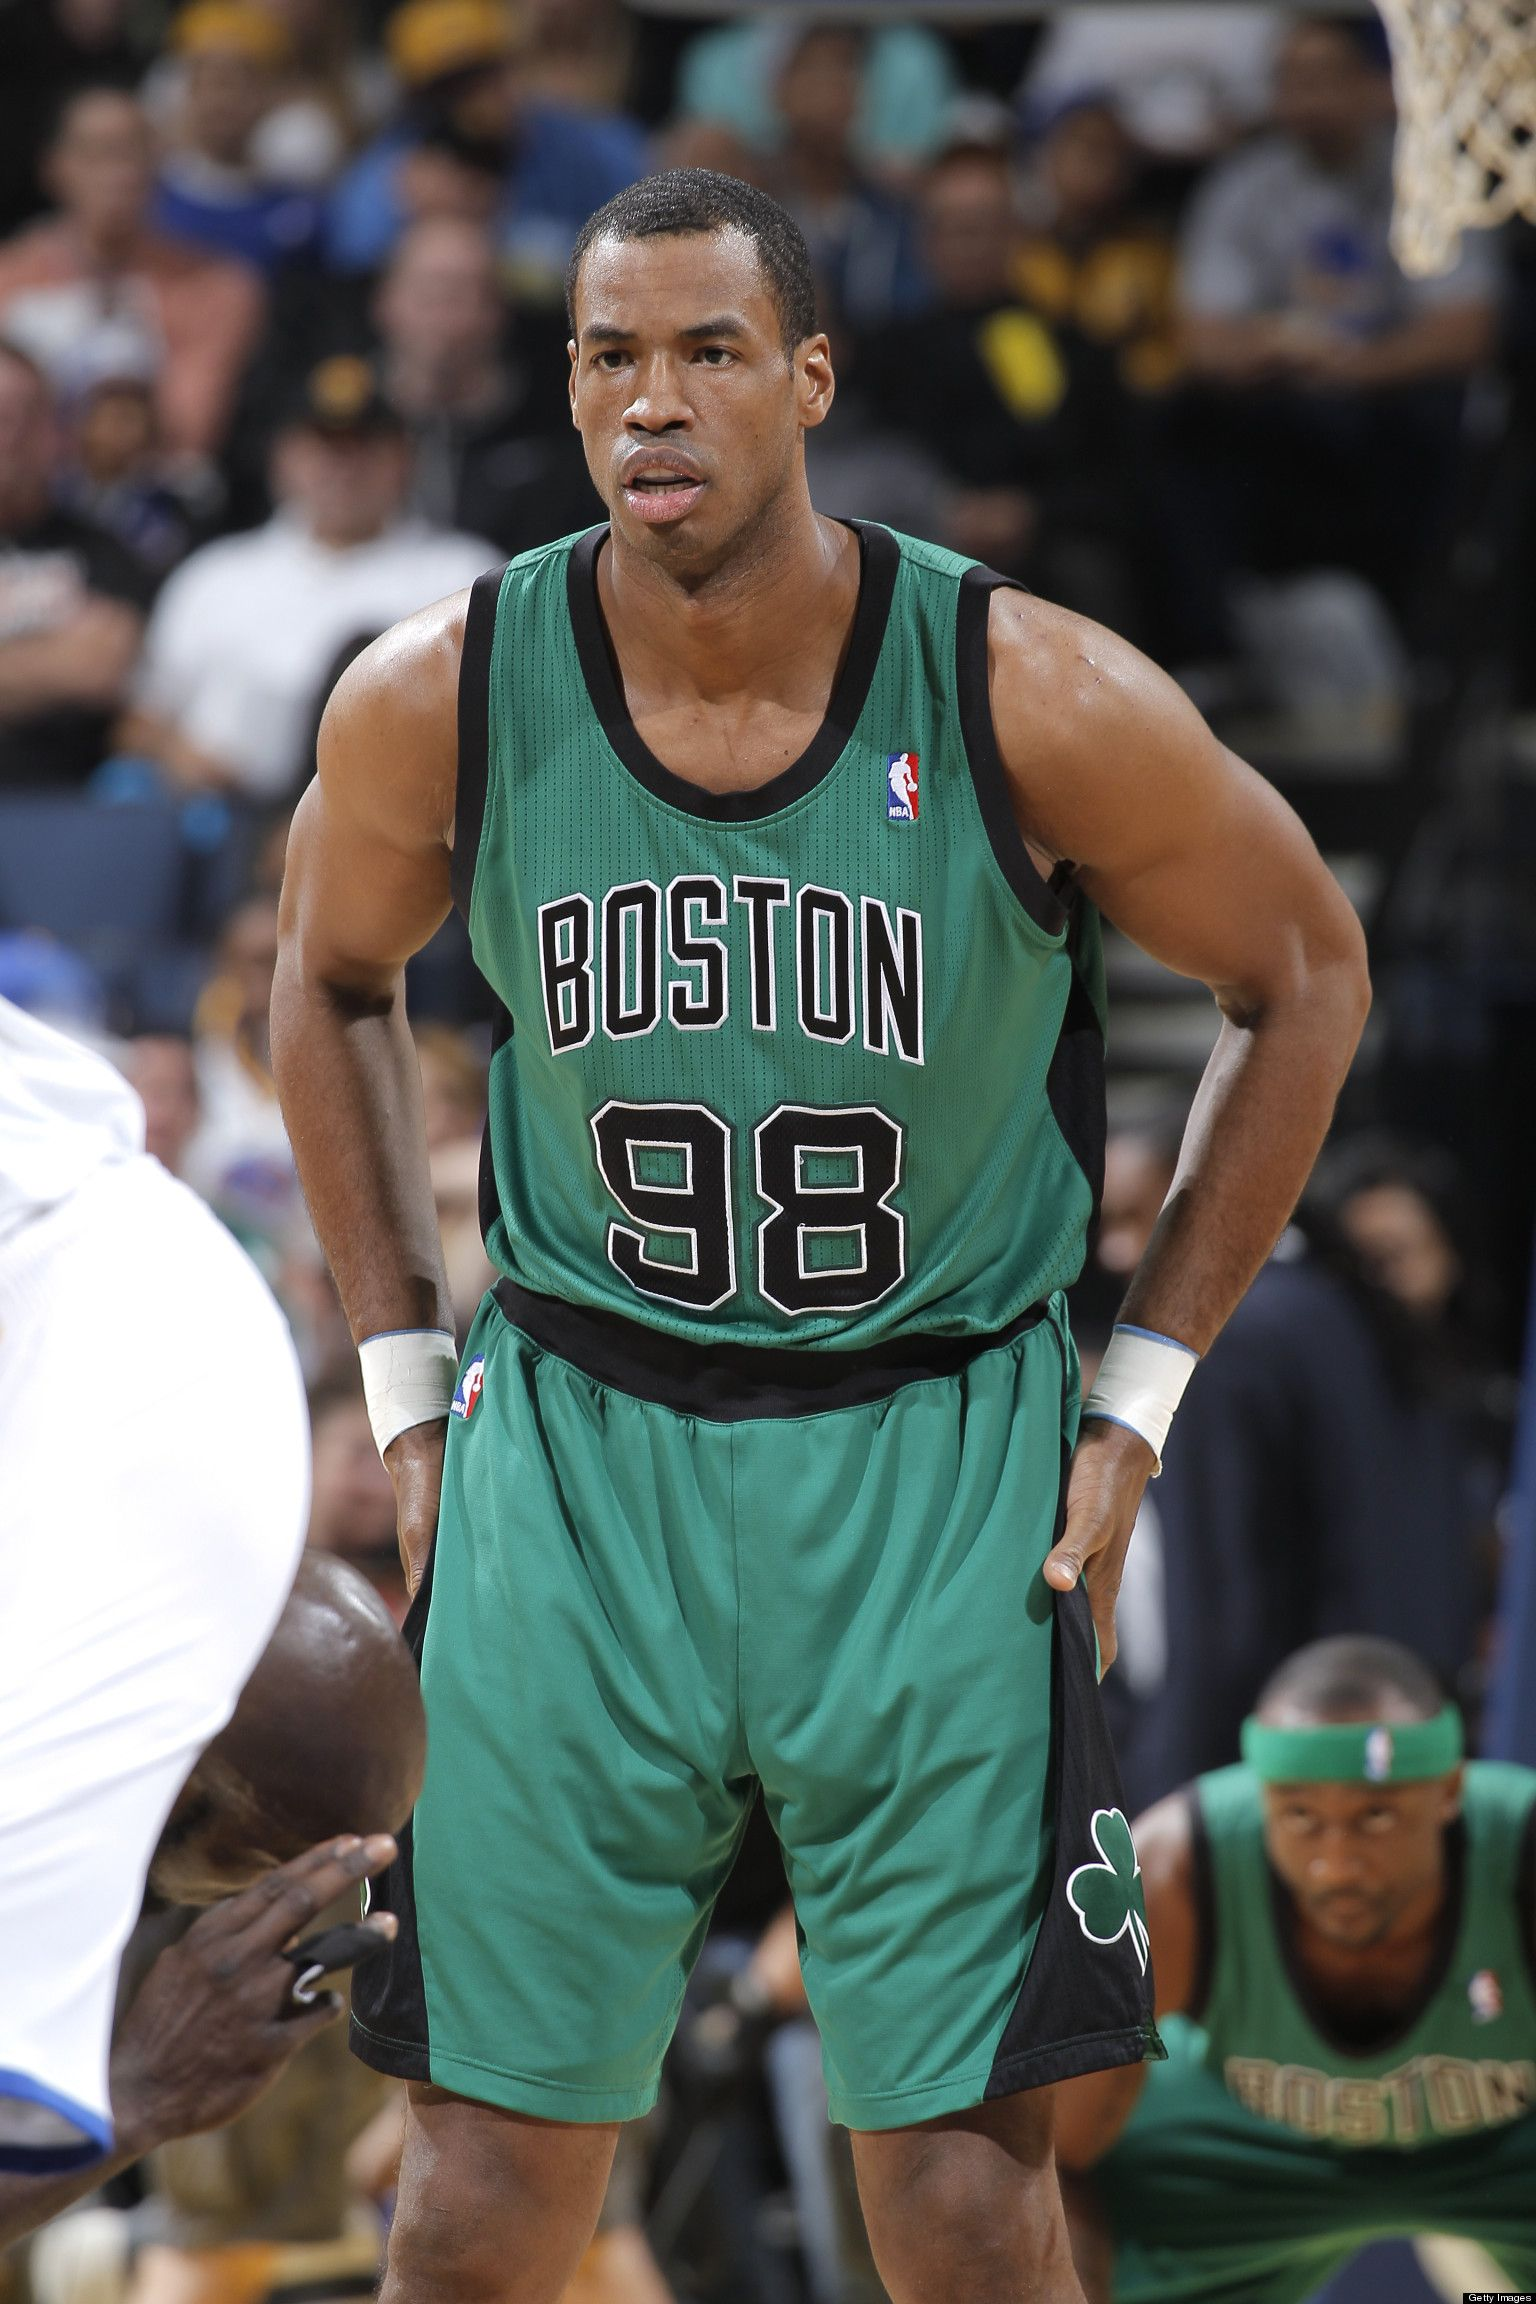 3ceadf225be Jason Collins' Matthew Shepard Tribute: Gay NBA Star Honors Slain Student  With No. 98